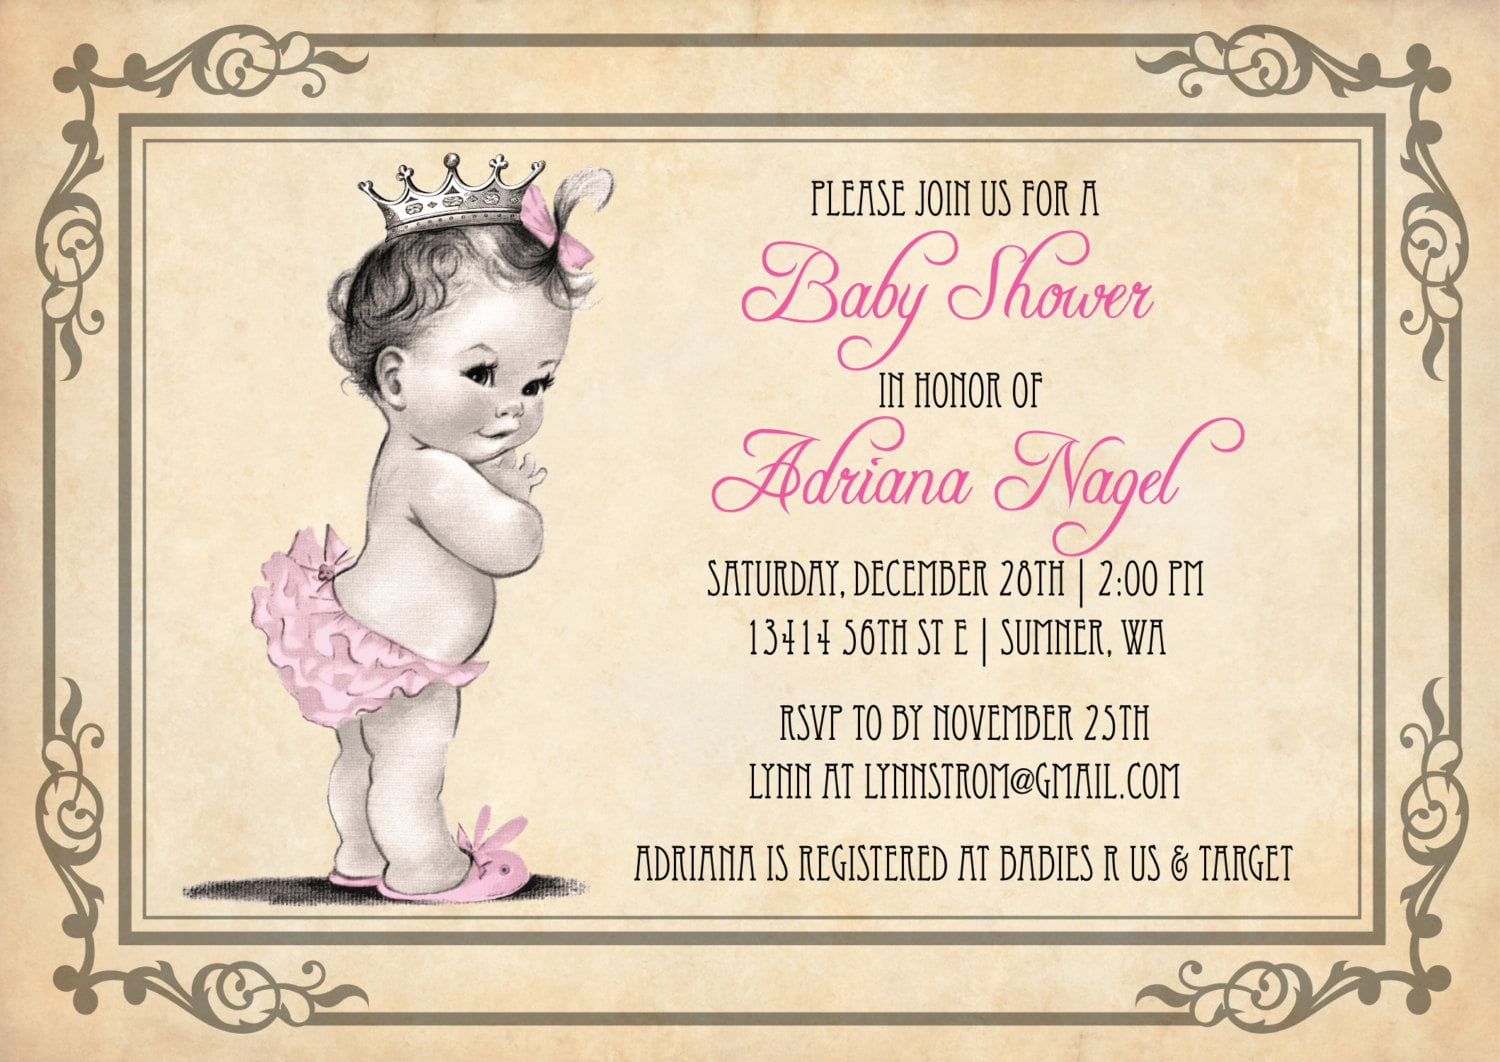 Baby Shower Invitations Walmart | FREE Printable Baby Shower ...